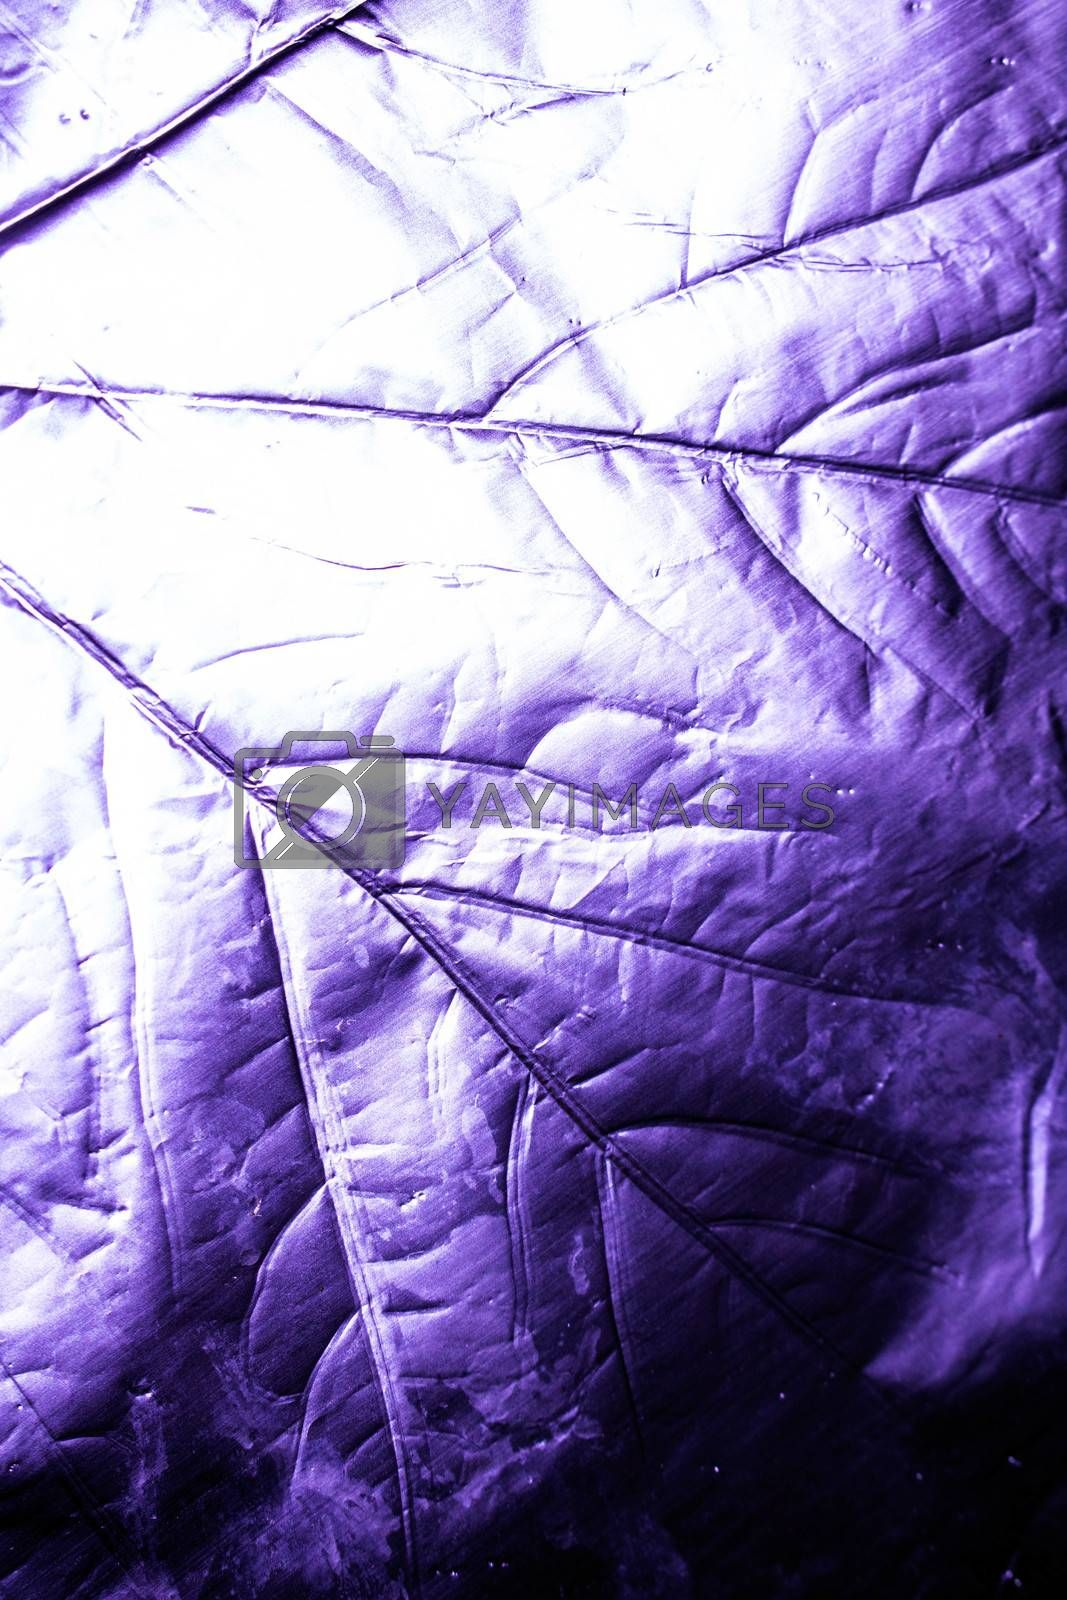 A Holographic Foil Leaf and Leaves with Veins Texture Shiny Pattern